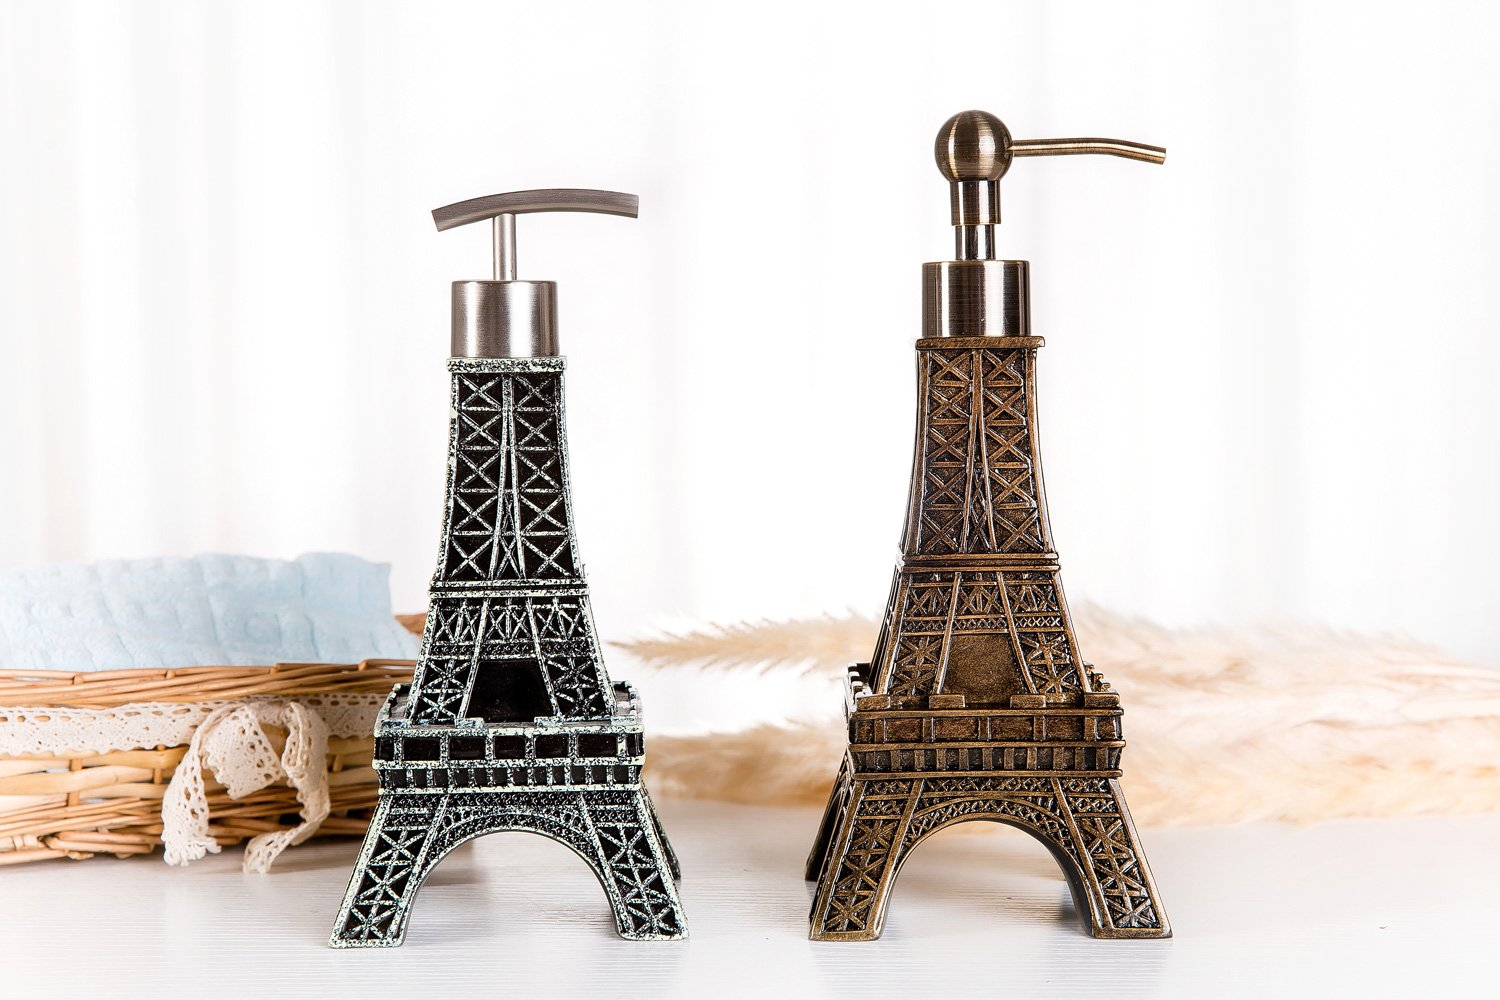 SILOKO 3D Eiffel Tower Metal Pump Soap Dispenser for Kitchen or Bathroom Bronze by SILOKO (Image #3)